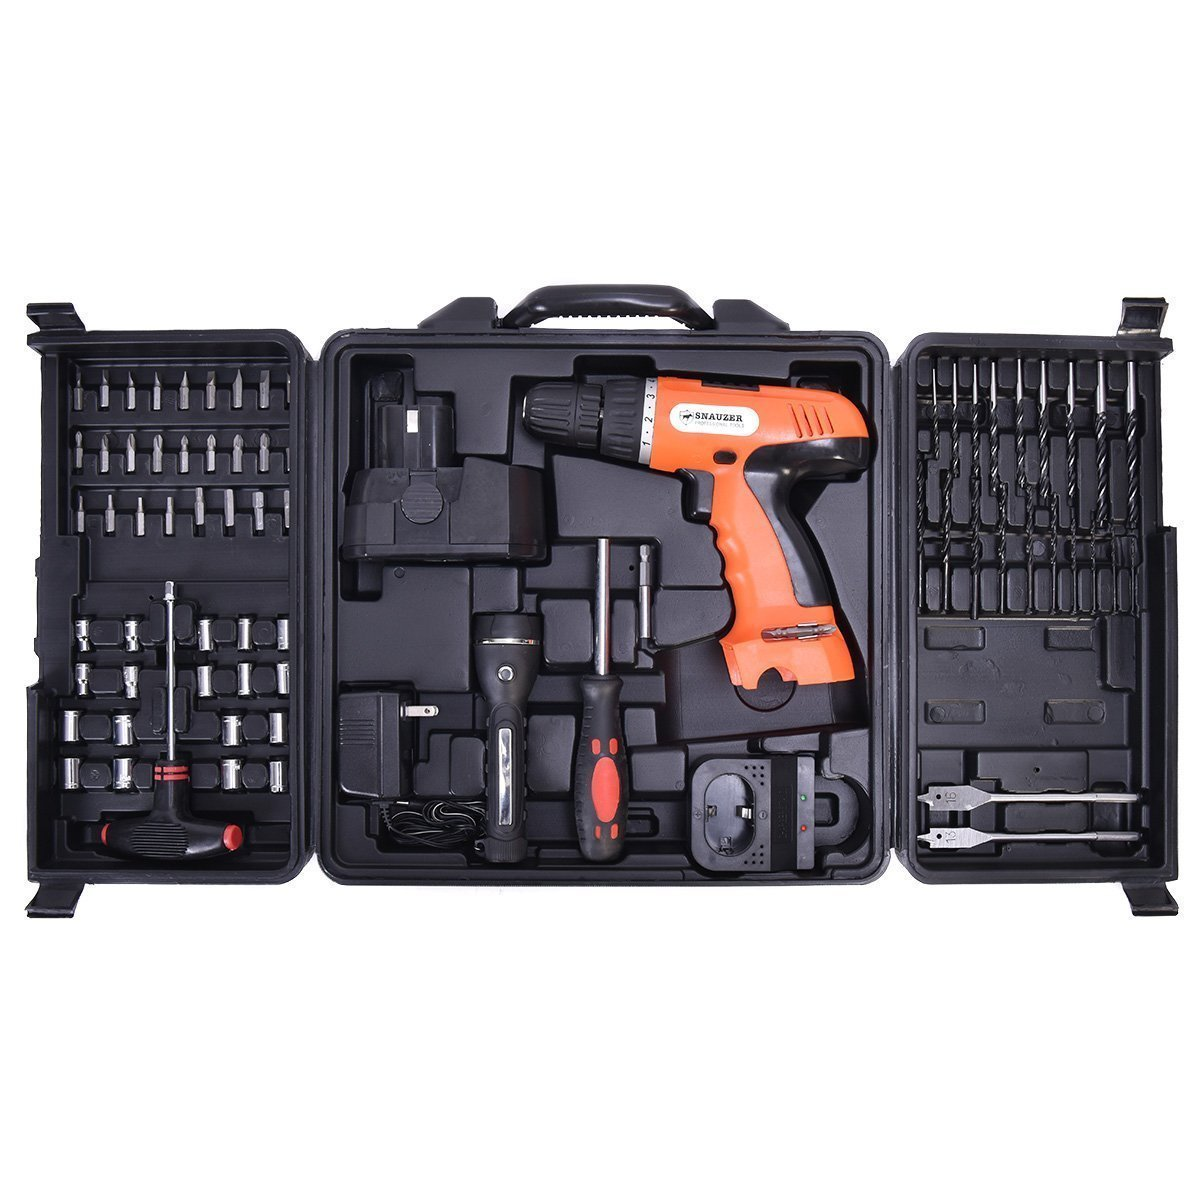 Goplus 18V Cordless Drill Set Driver Kit Construction Work Screwdriver, 78-Piece, Driver Bits Included, Max 3/8''